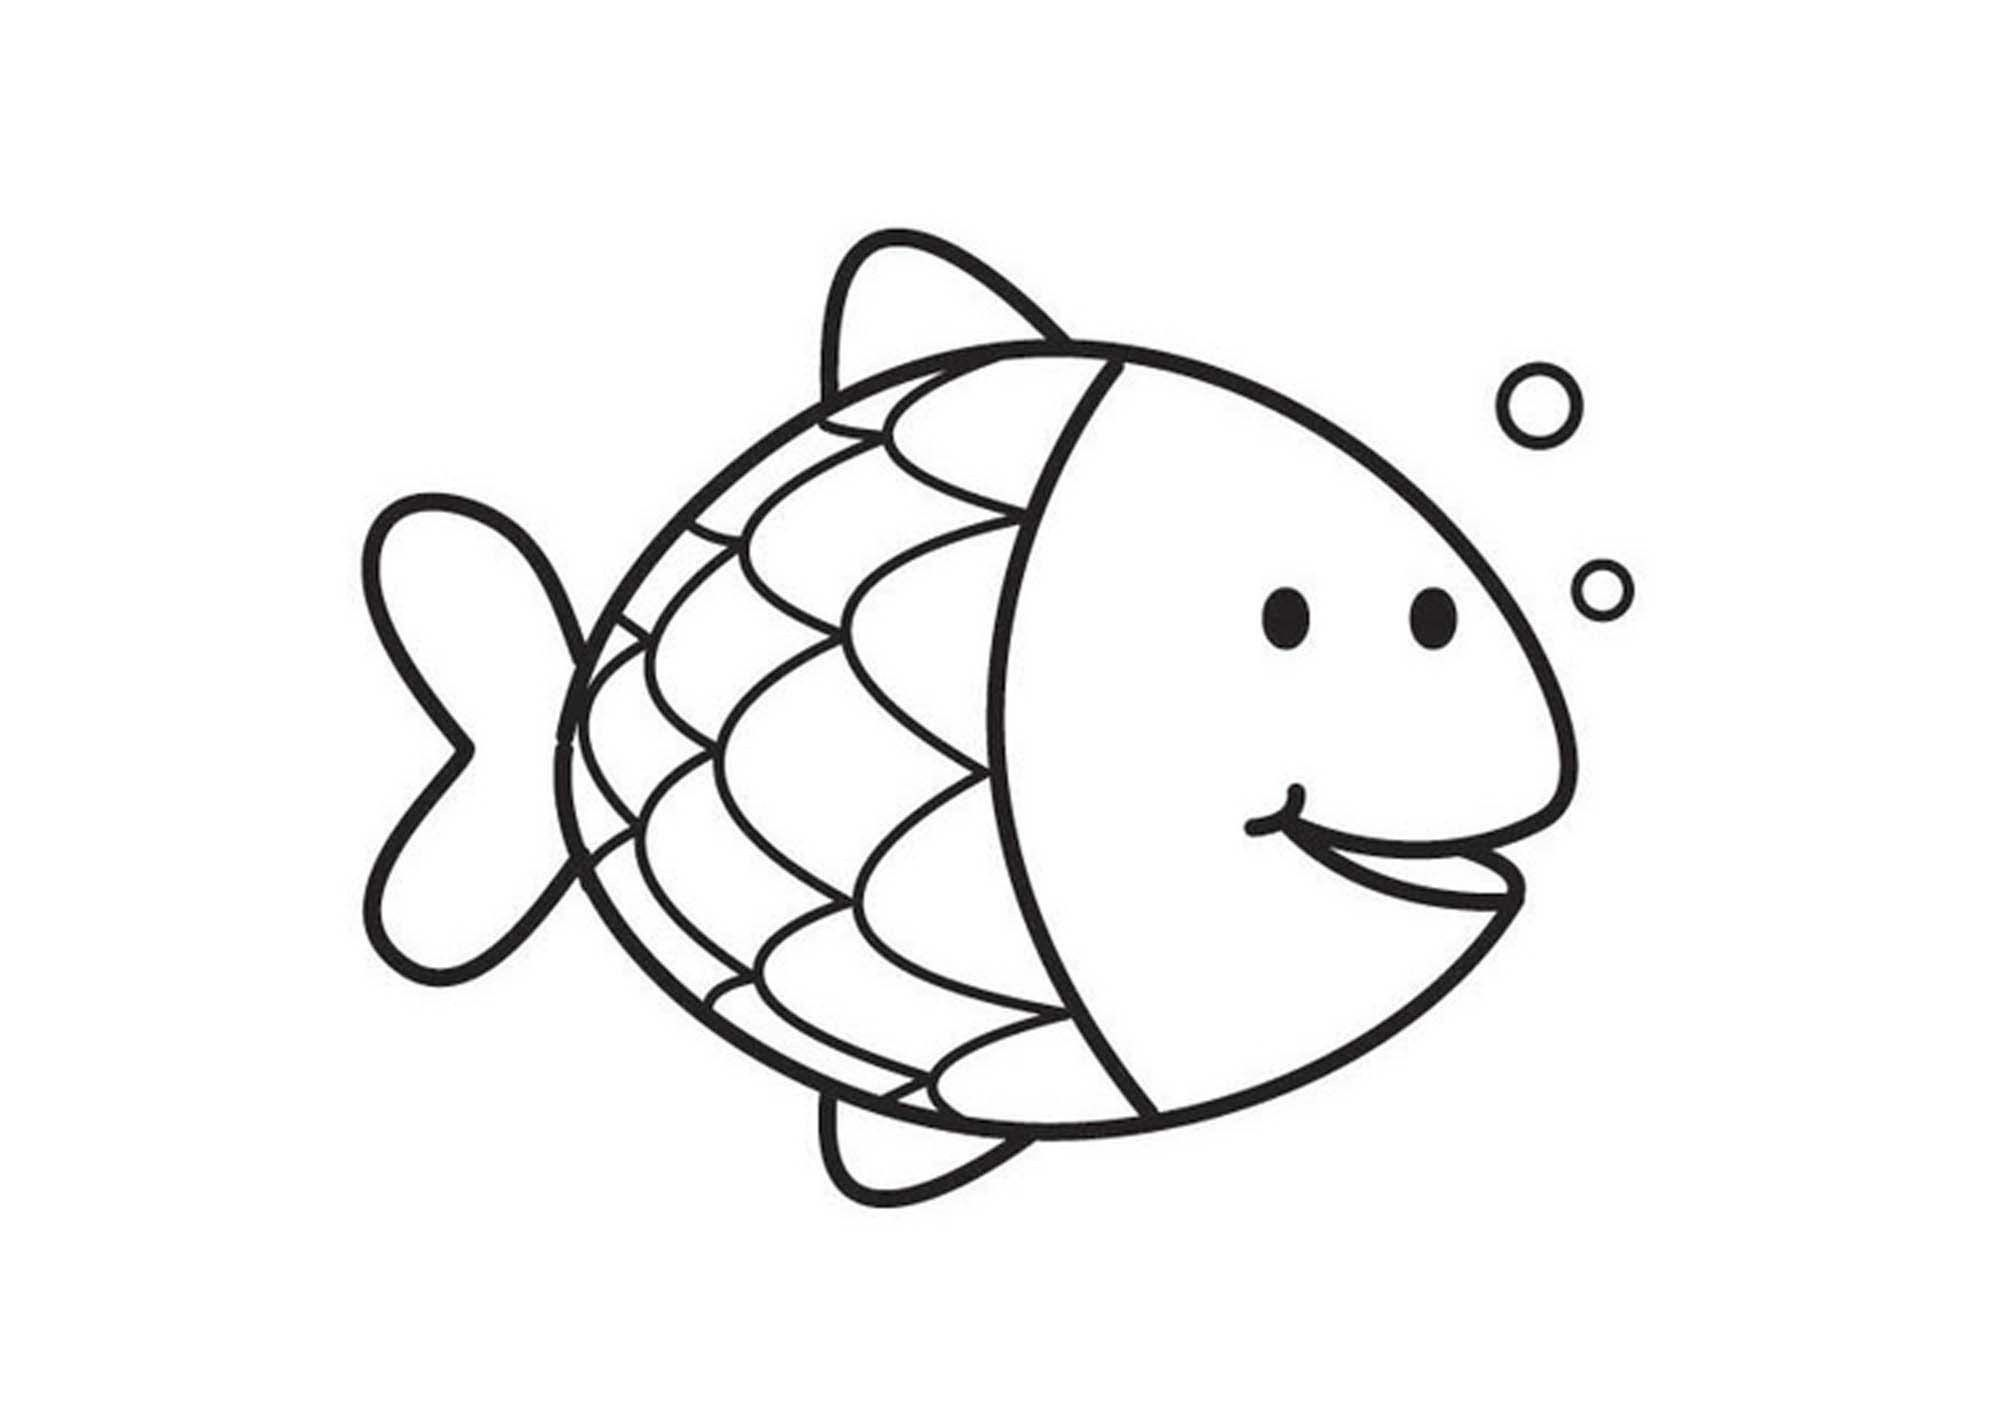 Cute Fish Coloring Pages For Kids From The Finding Nemo Movie Free Coloring Sheets Fish Coloring Page Rainbow Fish Coloring Page Spring Coloring Pages